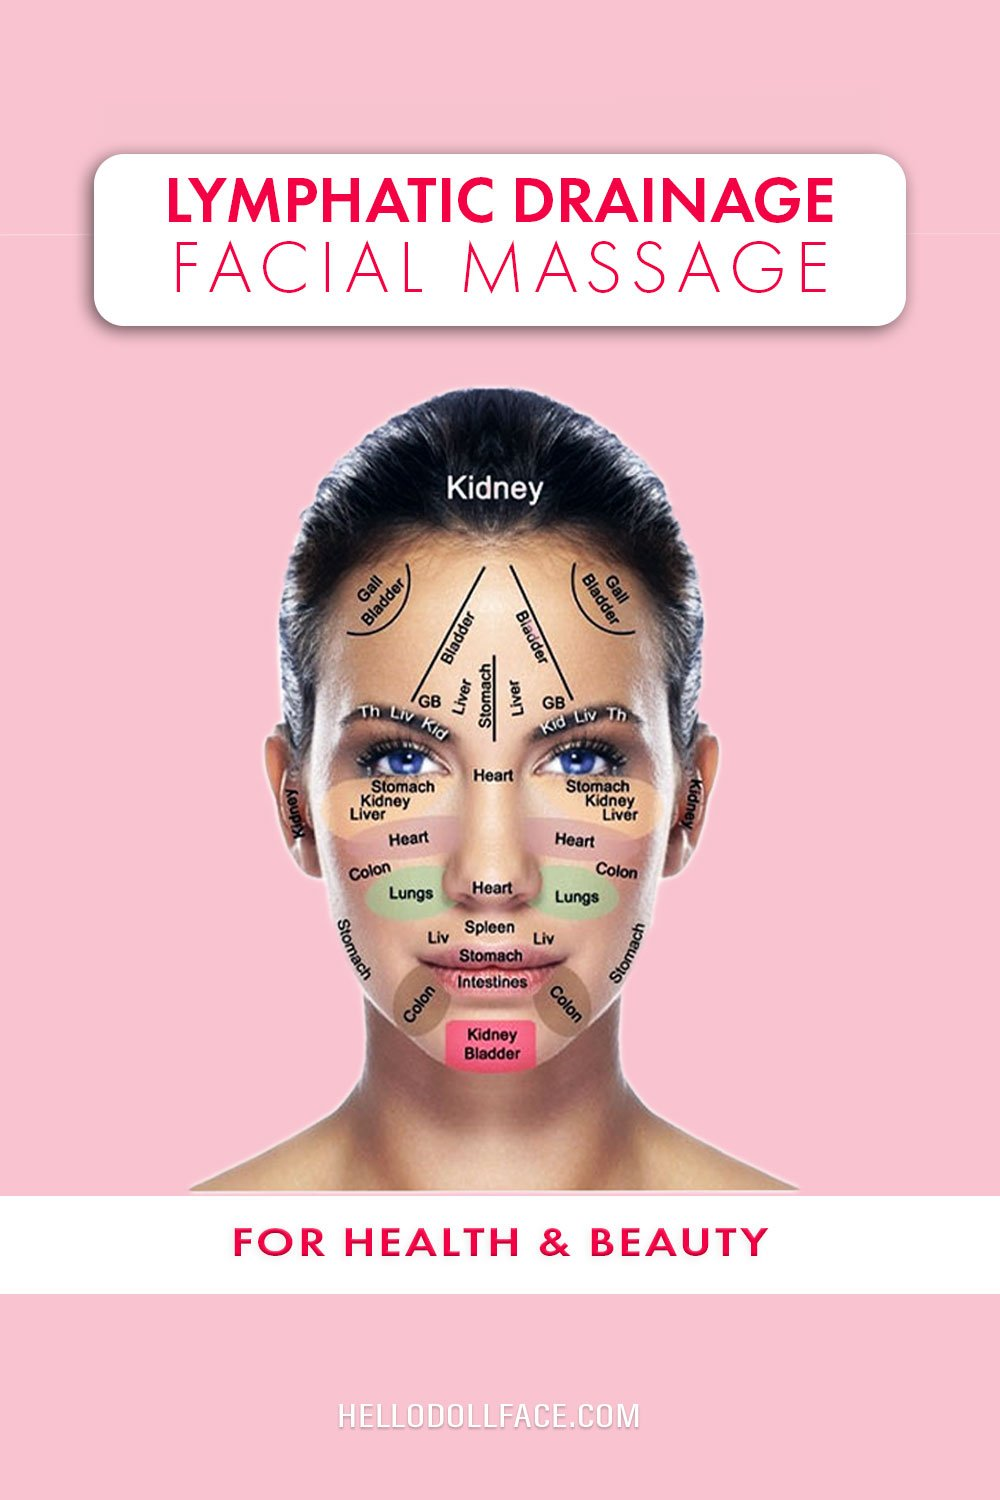 How to: at-home lymphatic drainage facial massage for health & beauty